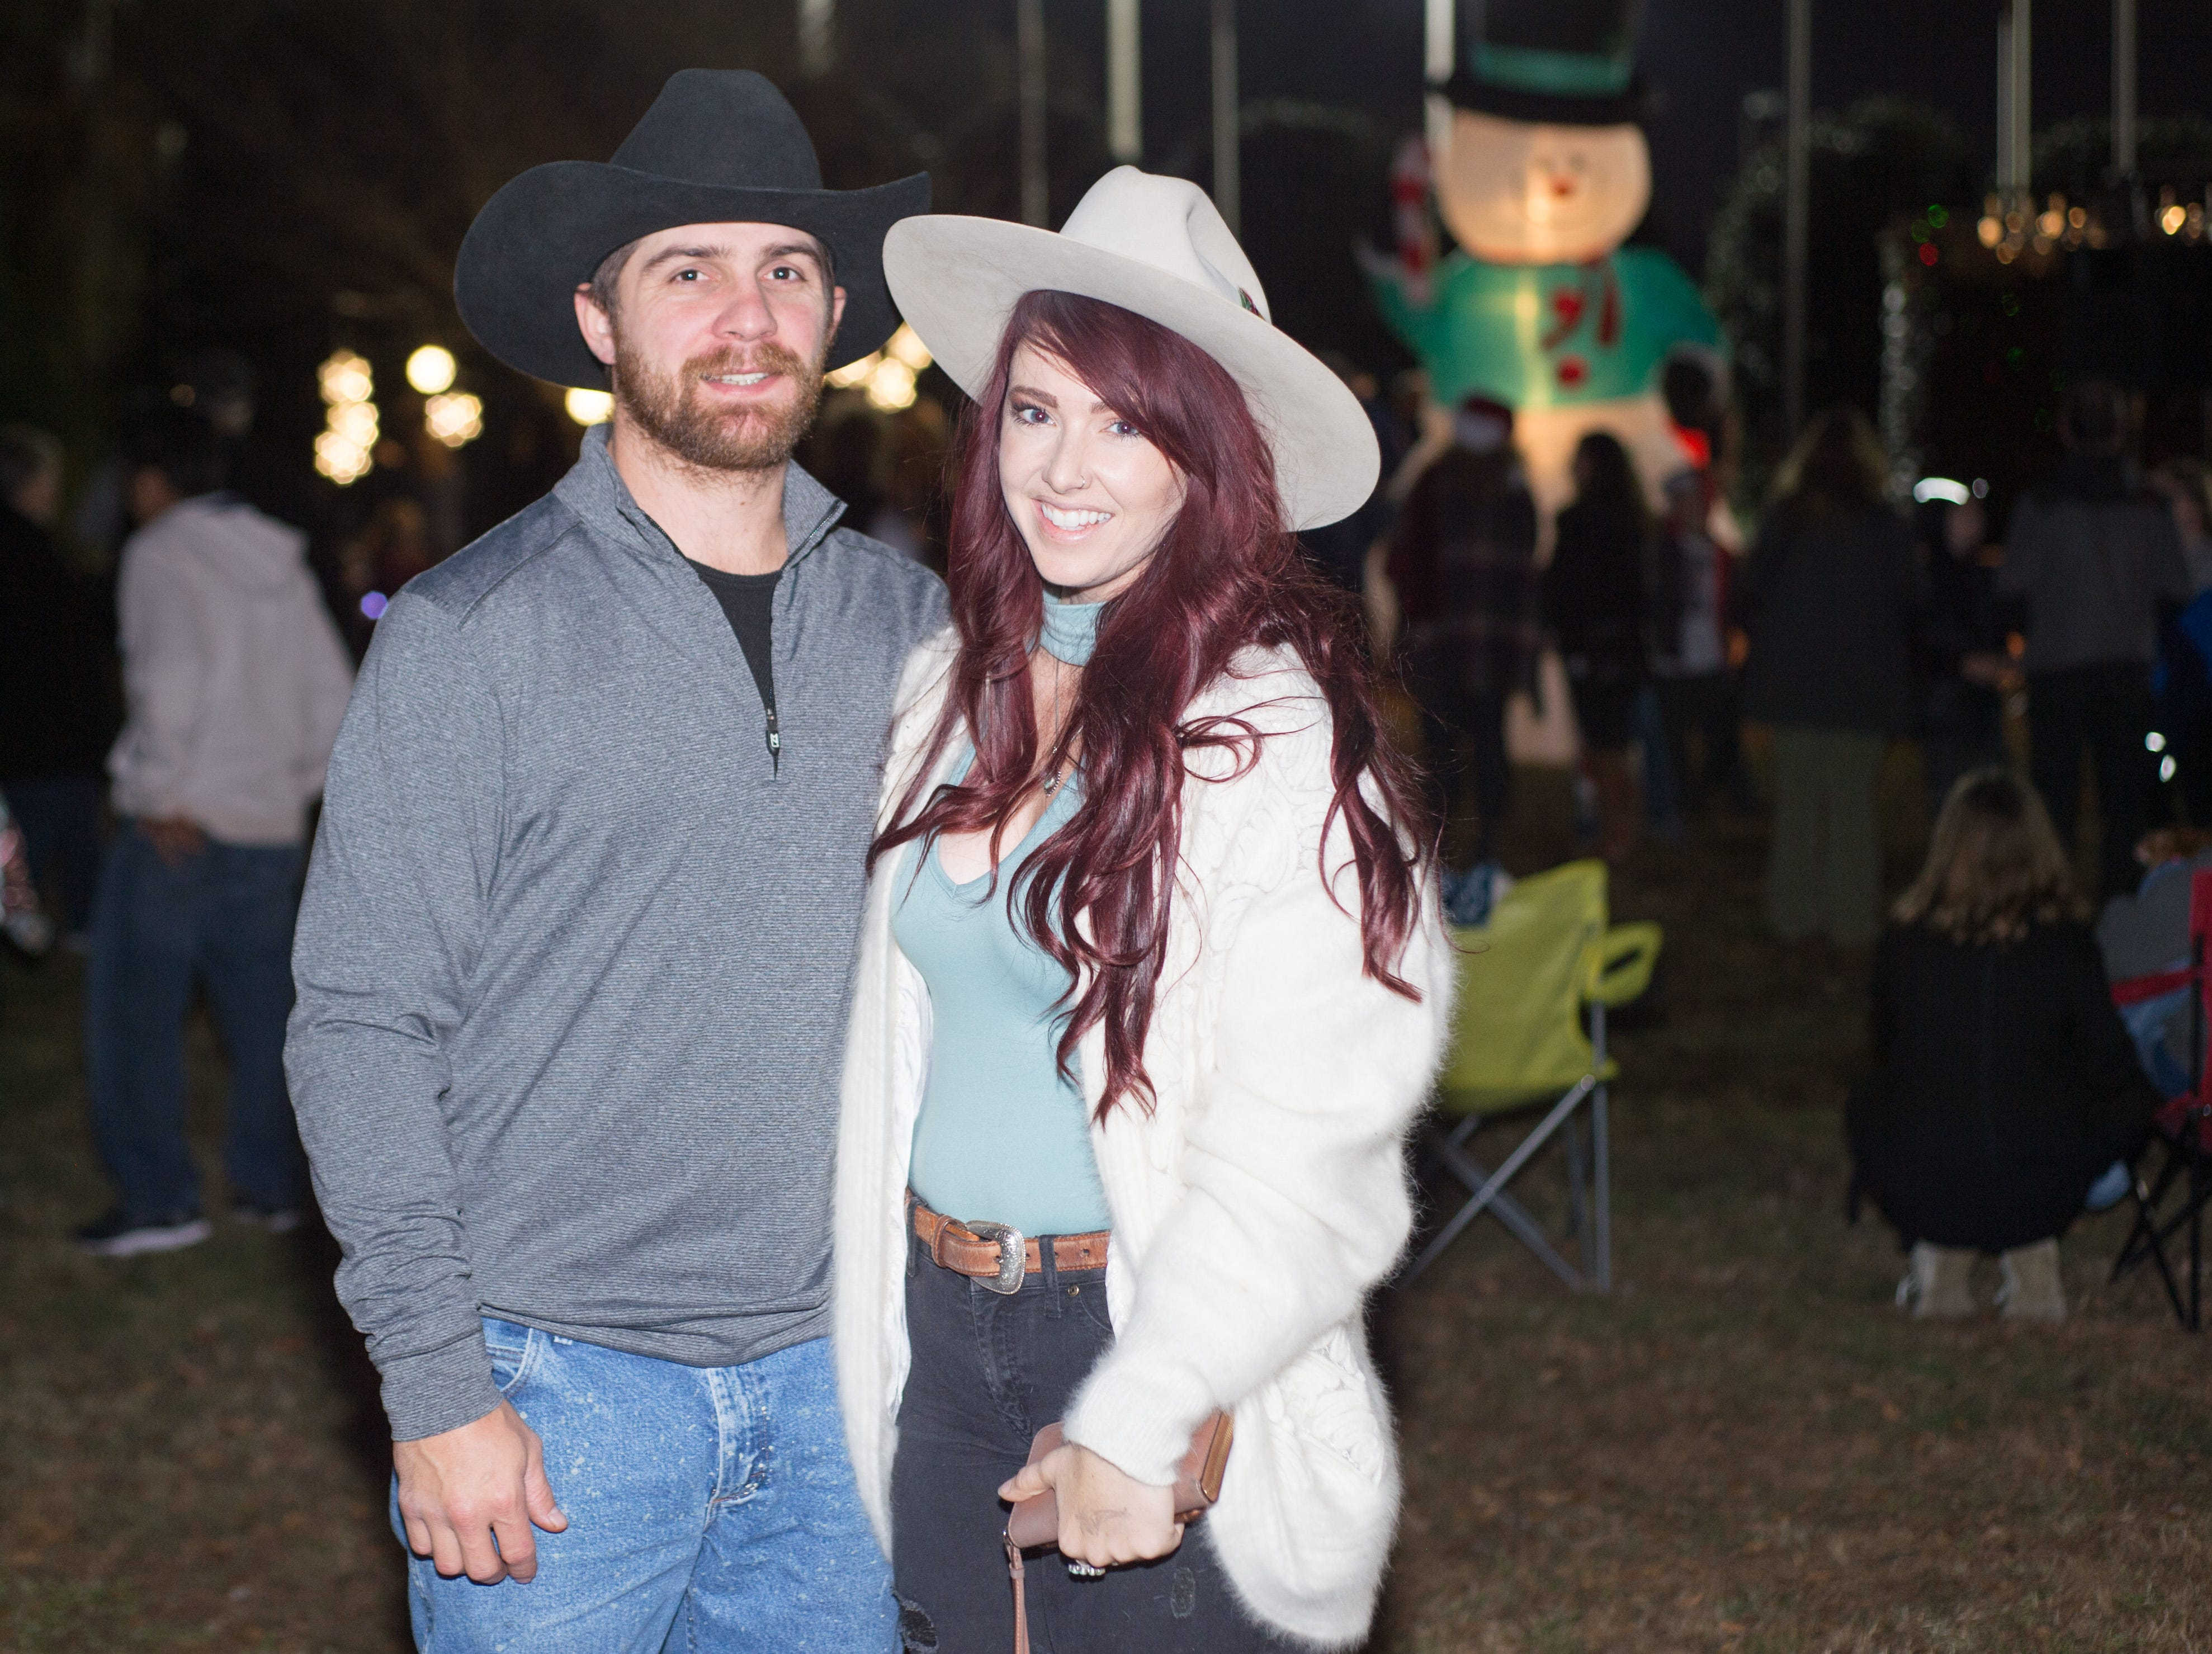 Chris Hieber and Liz Hill pause for a photograph during the Hendersonville HolidayFest Annual Tree Lighting Ceremony at Memorial Park on Sunday, Nov. 25.